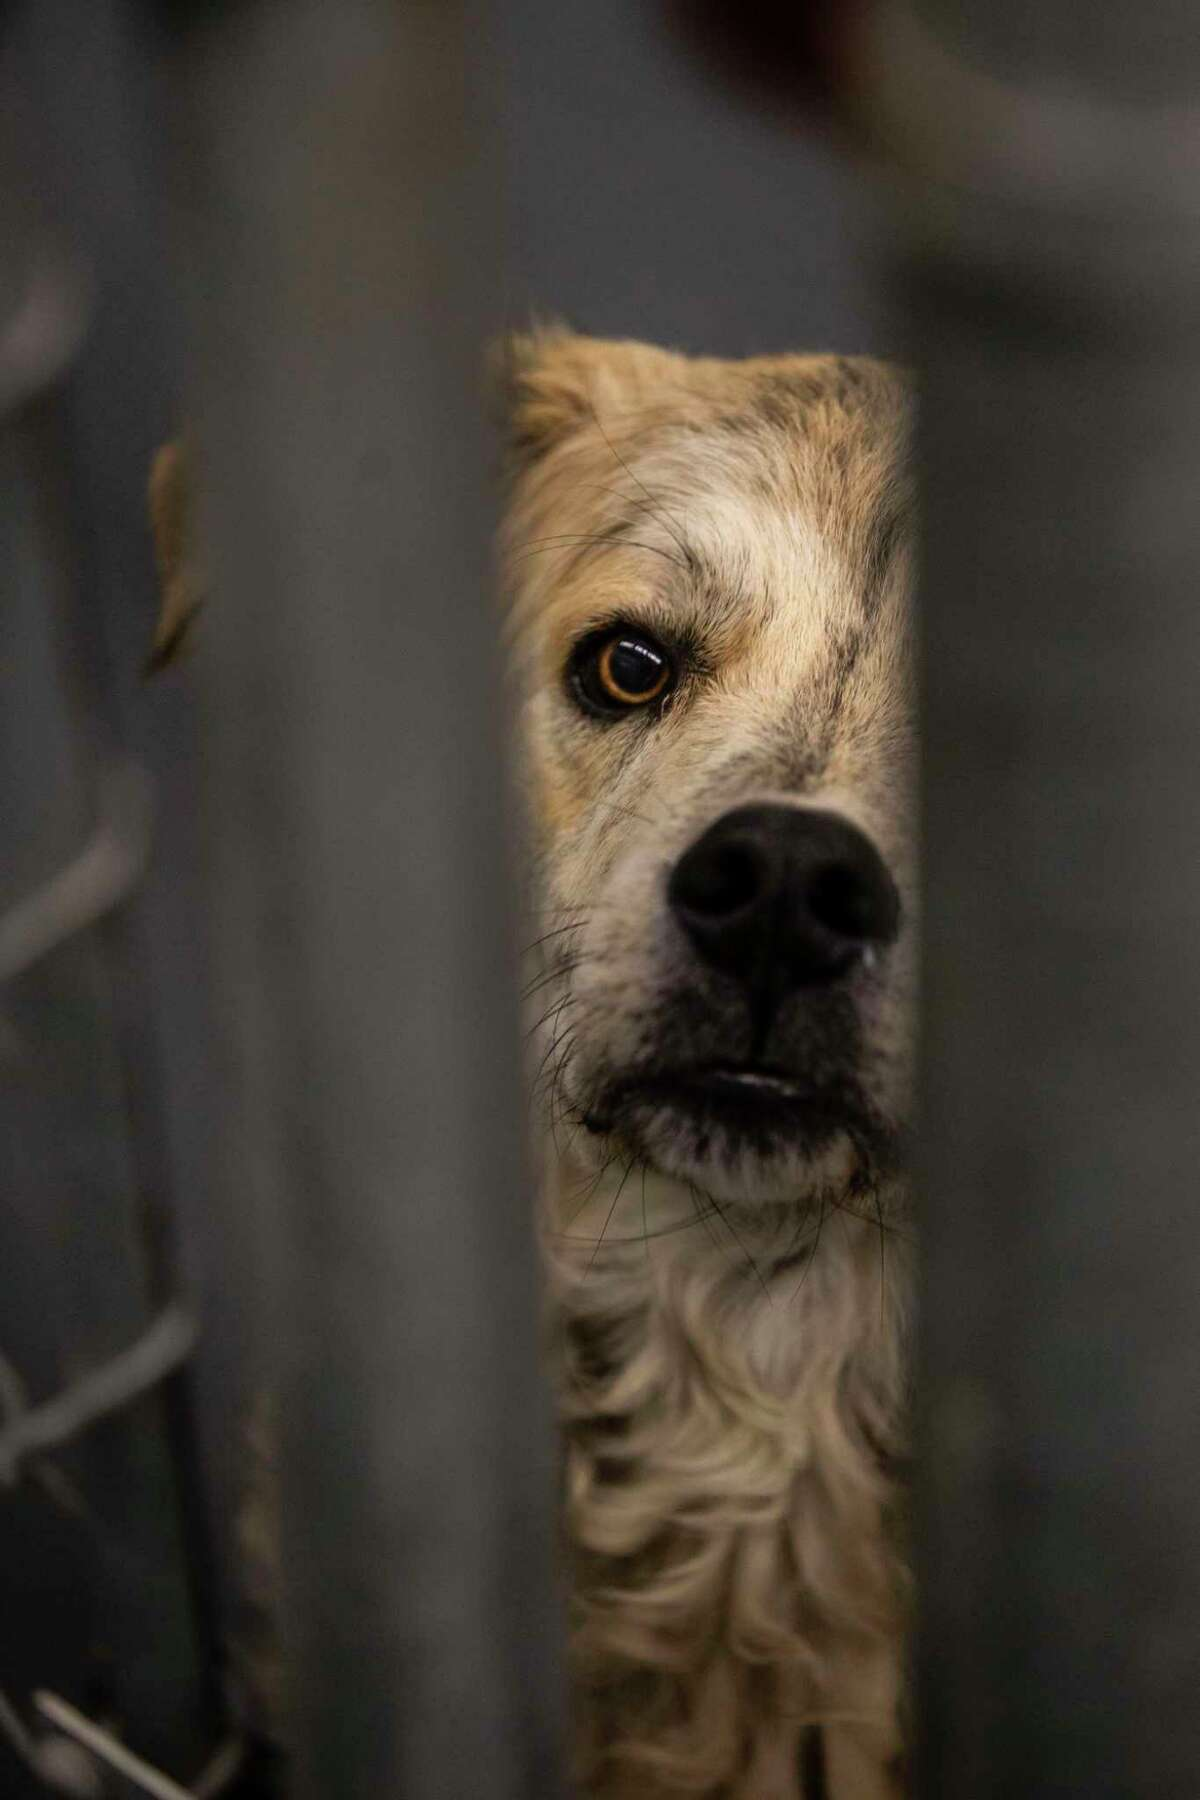 A dog awaiting adoption peers out of its kennel at Animal Care Services last week. Agency pet trainers and behavior specialists and rescue/foster groups dedicate many hours behind the scenes so pets can find homes at weekly adoption, foster events and social media sites.